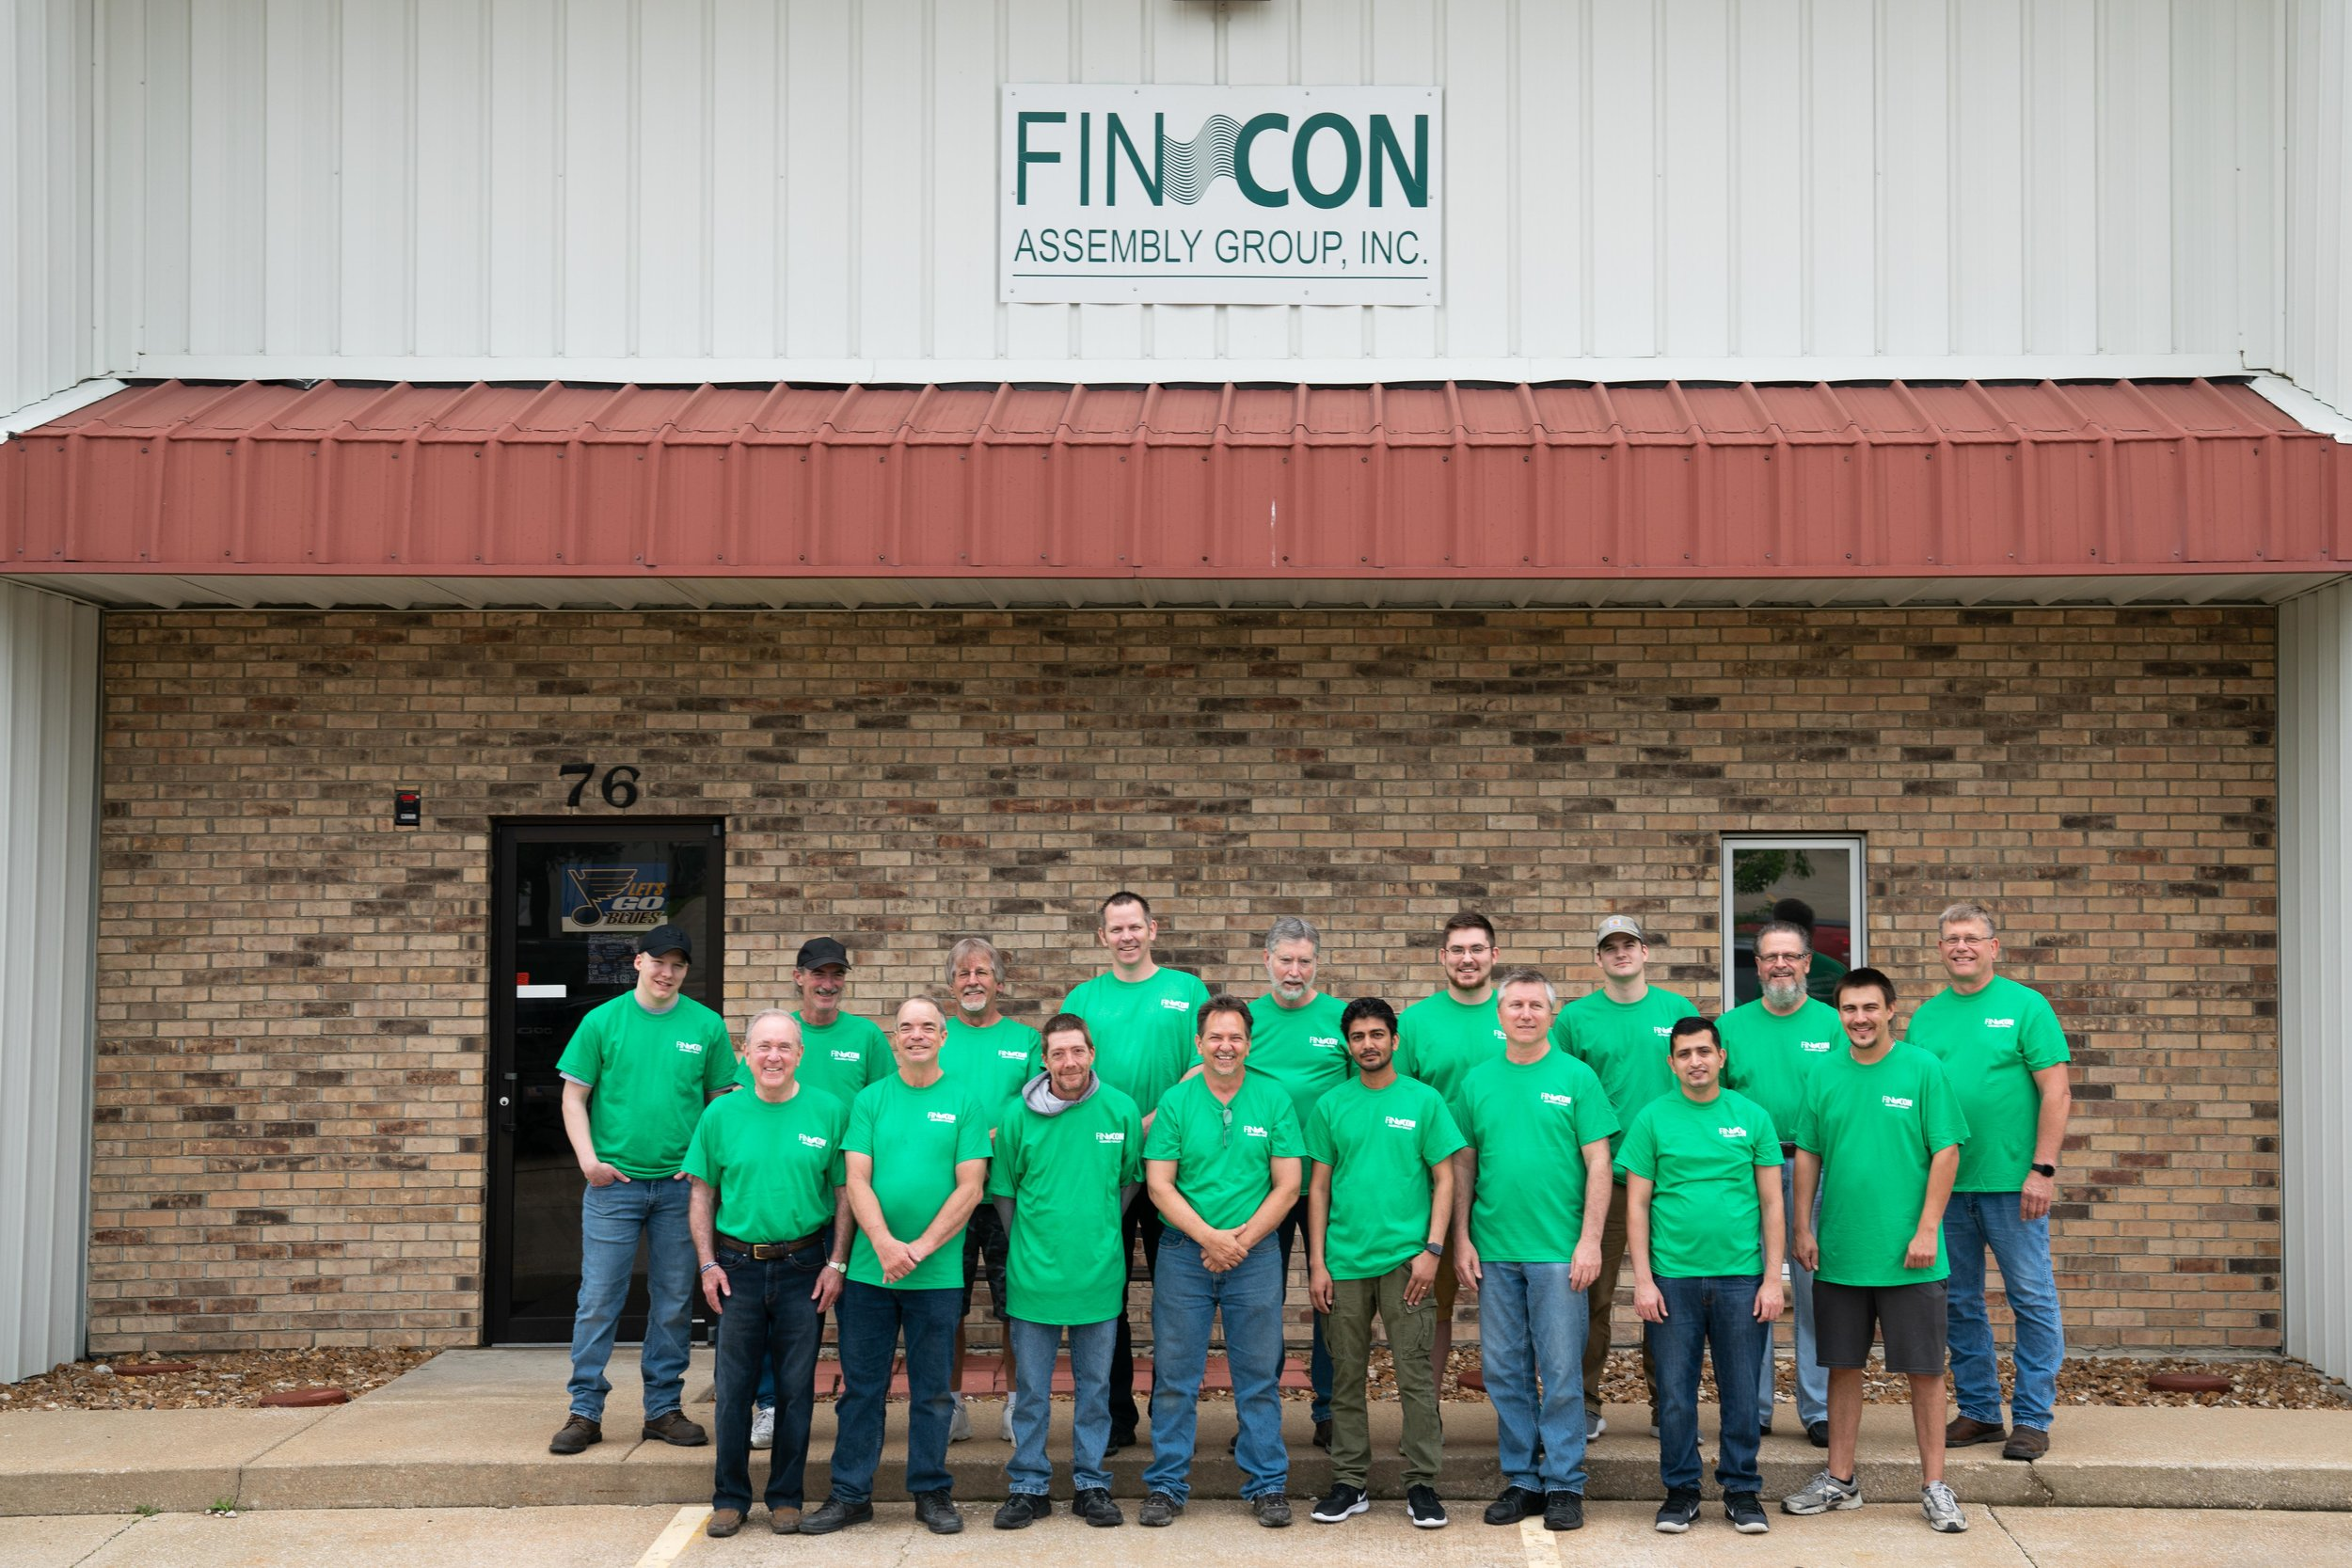 05.23.19 - Fin-Con Assembly Group_Edited_Color_ Compressed File Sizes_038.jpg